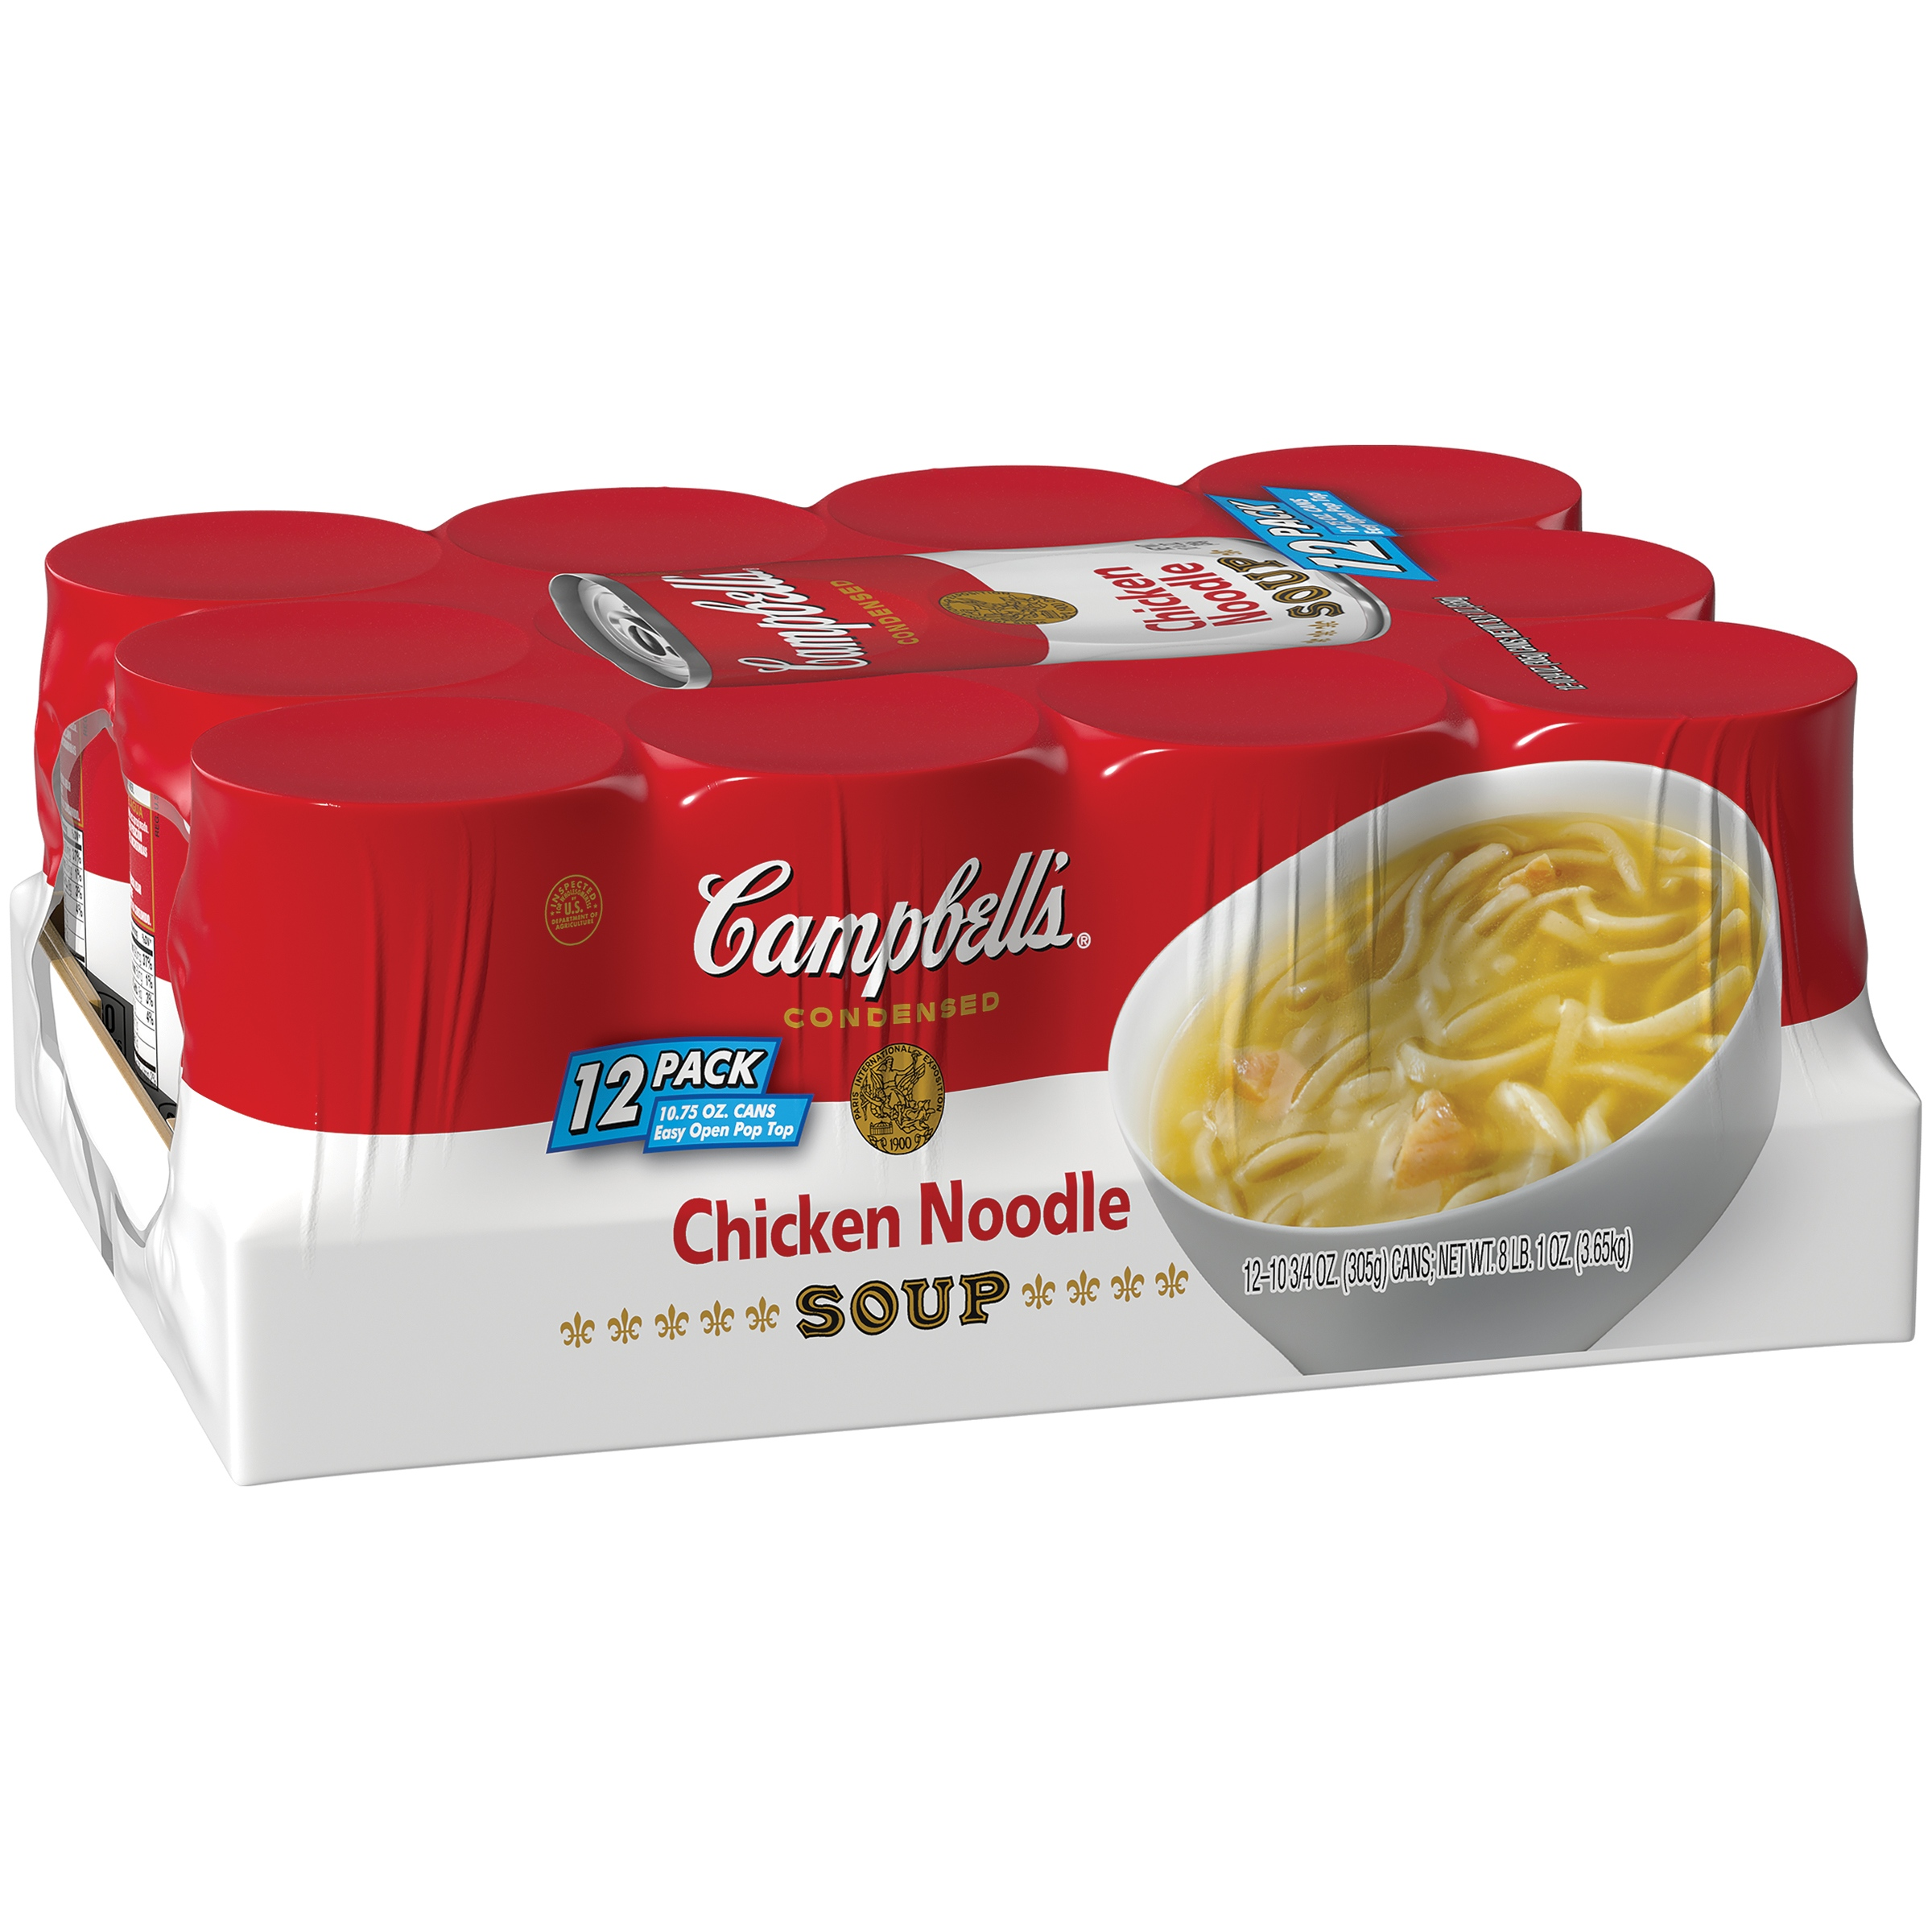 Campbell's Chicken Noodle Soup 10.75oz 12 pack by Campbell Soup Company